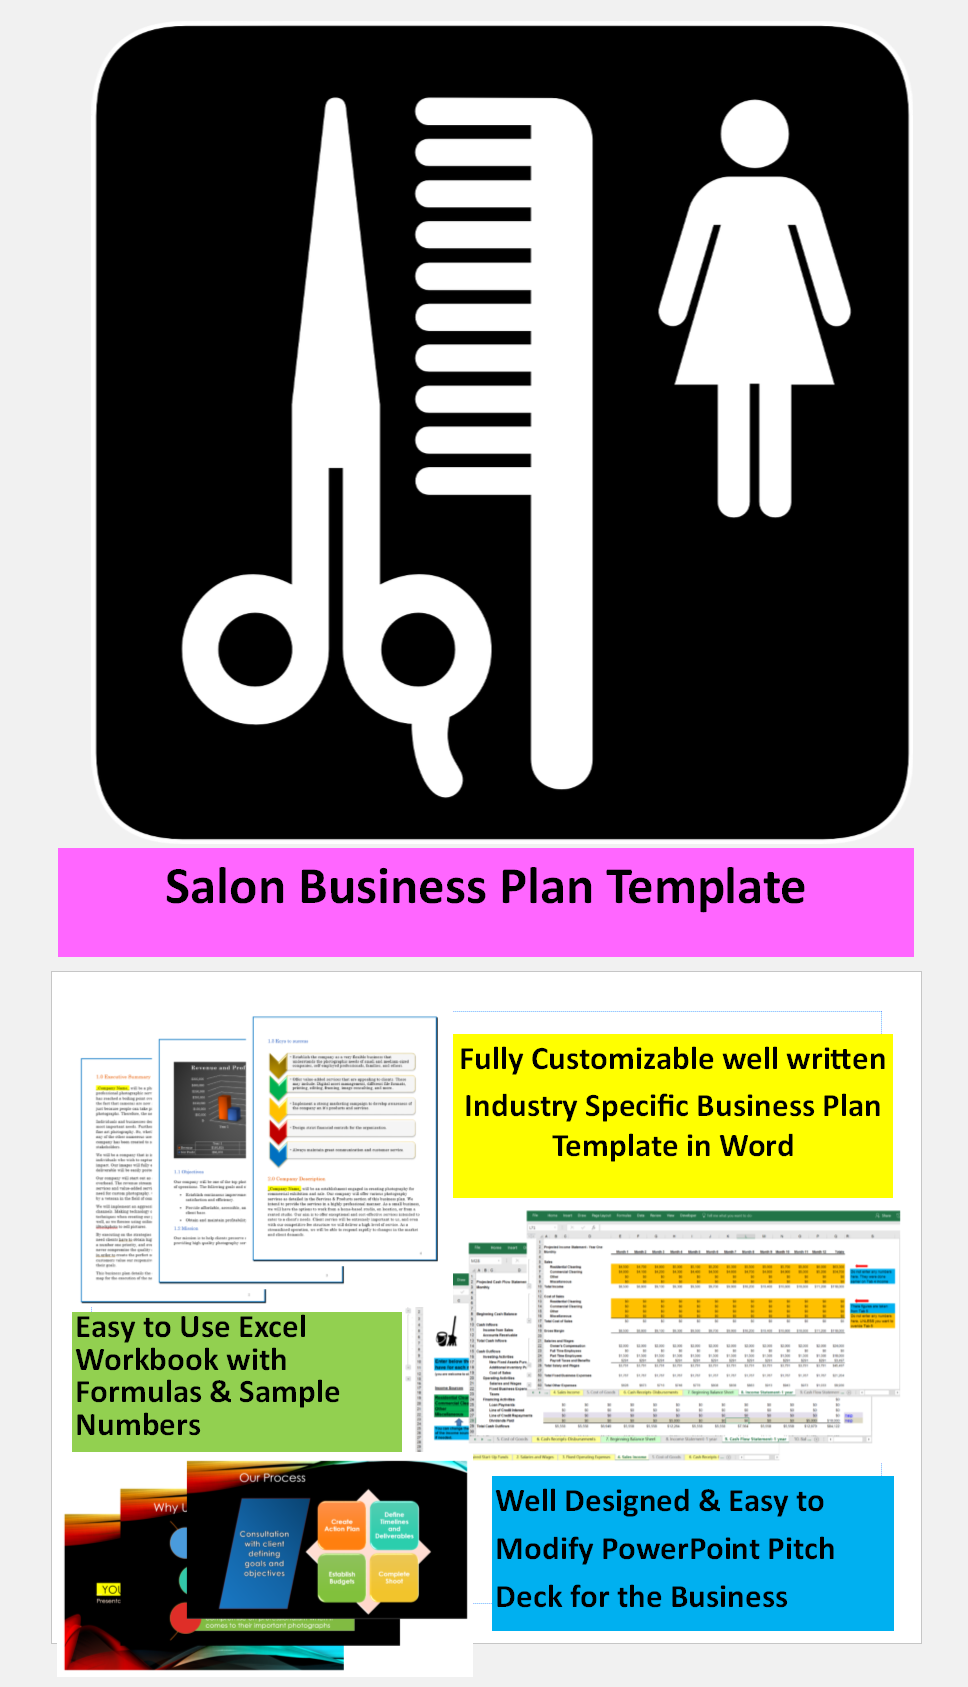 Salon business plan template great easy to use templates for salon business plan template great easy to use templates for starting running a salon accmission Gallery